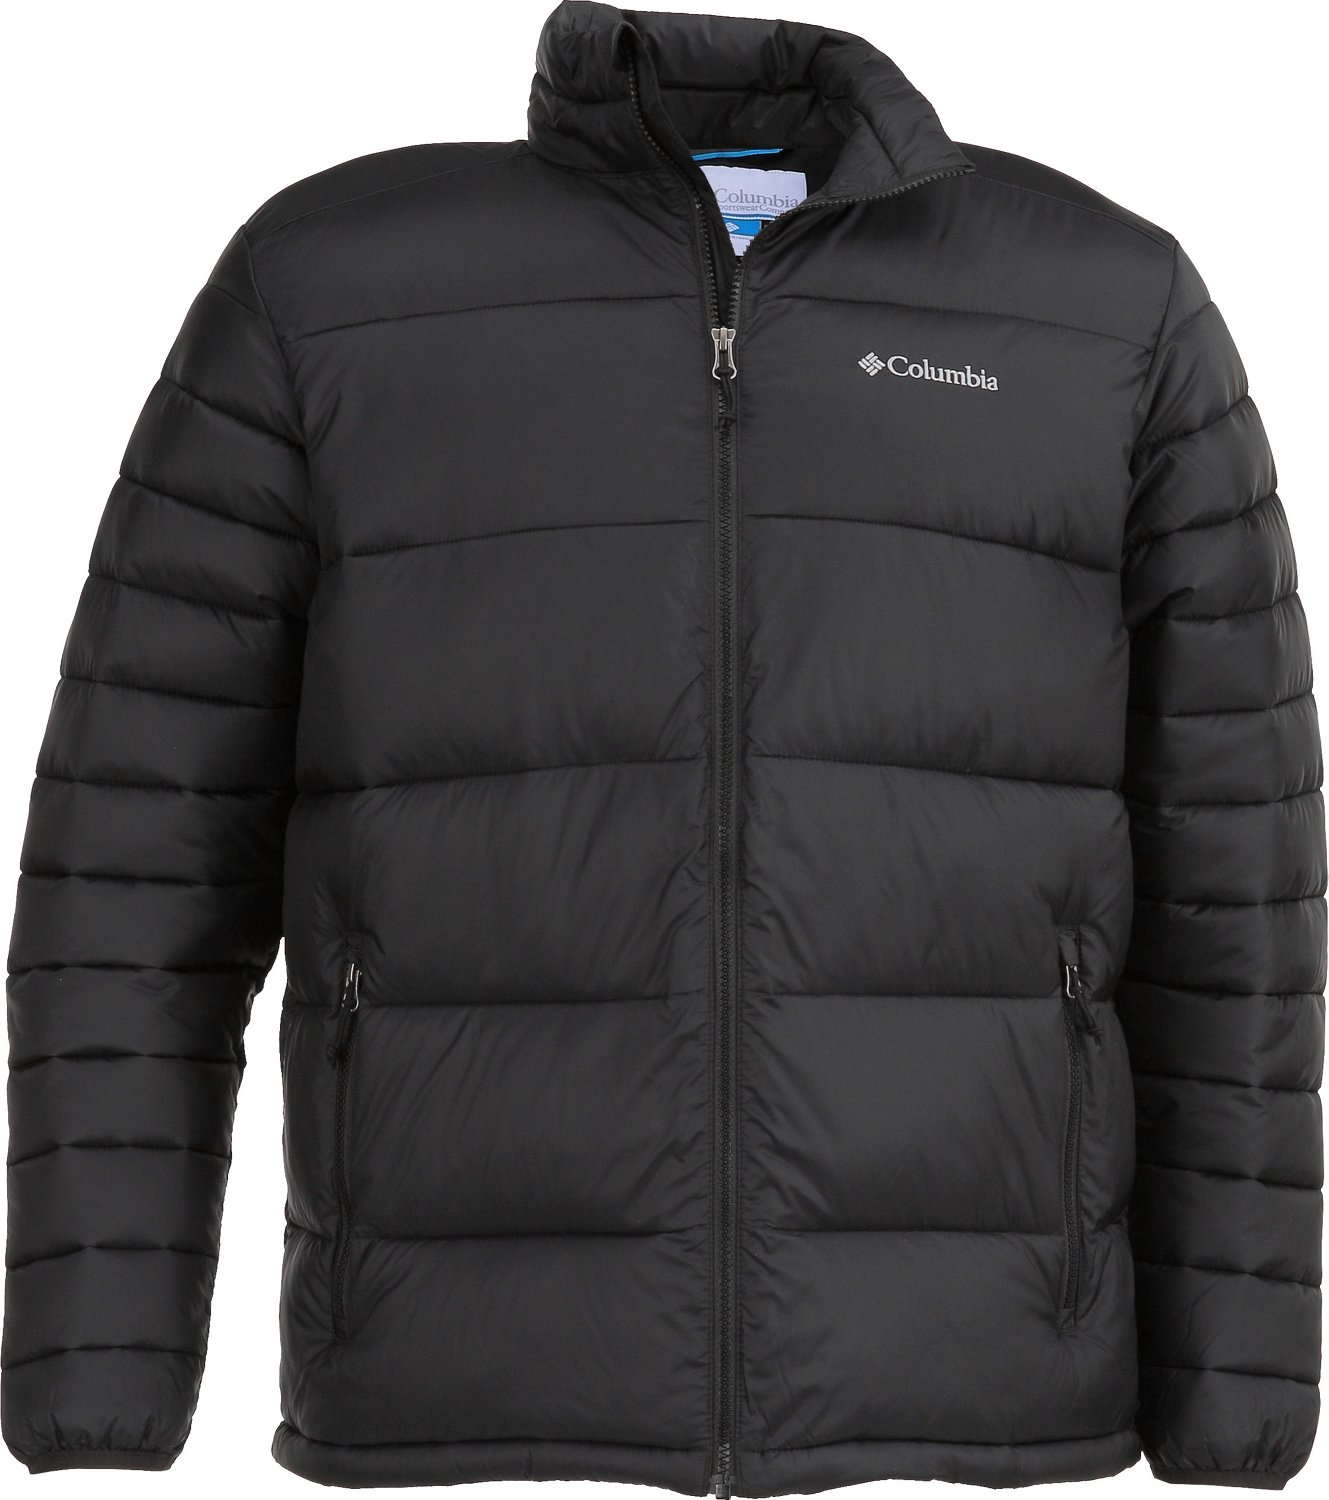 7f701e2b4296 Display product reviews for Columbia Sportswear Men s Frost Fighter Jacket